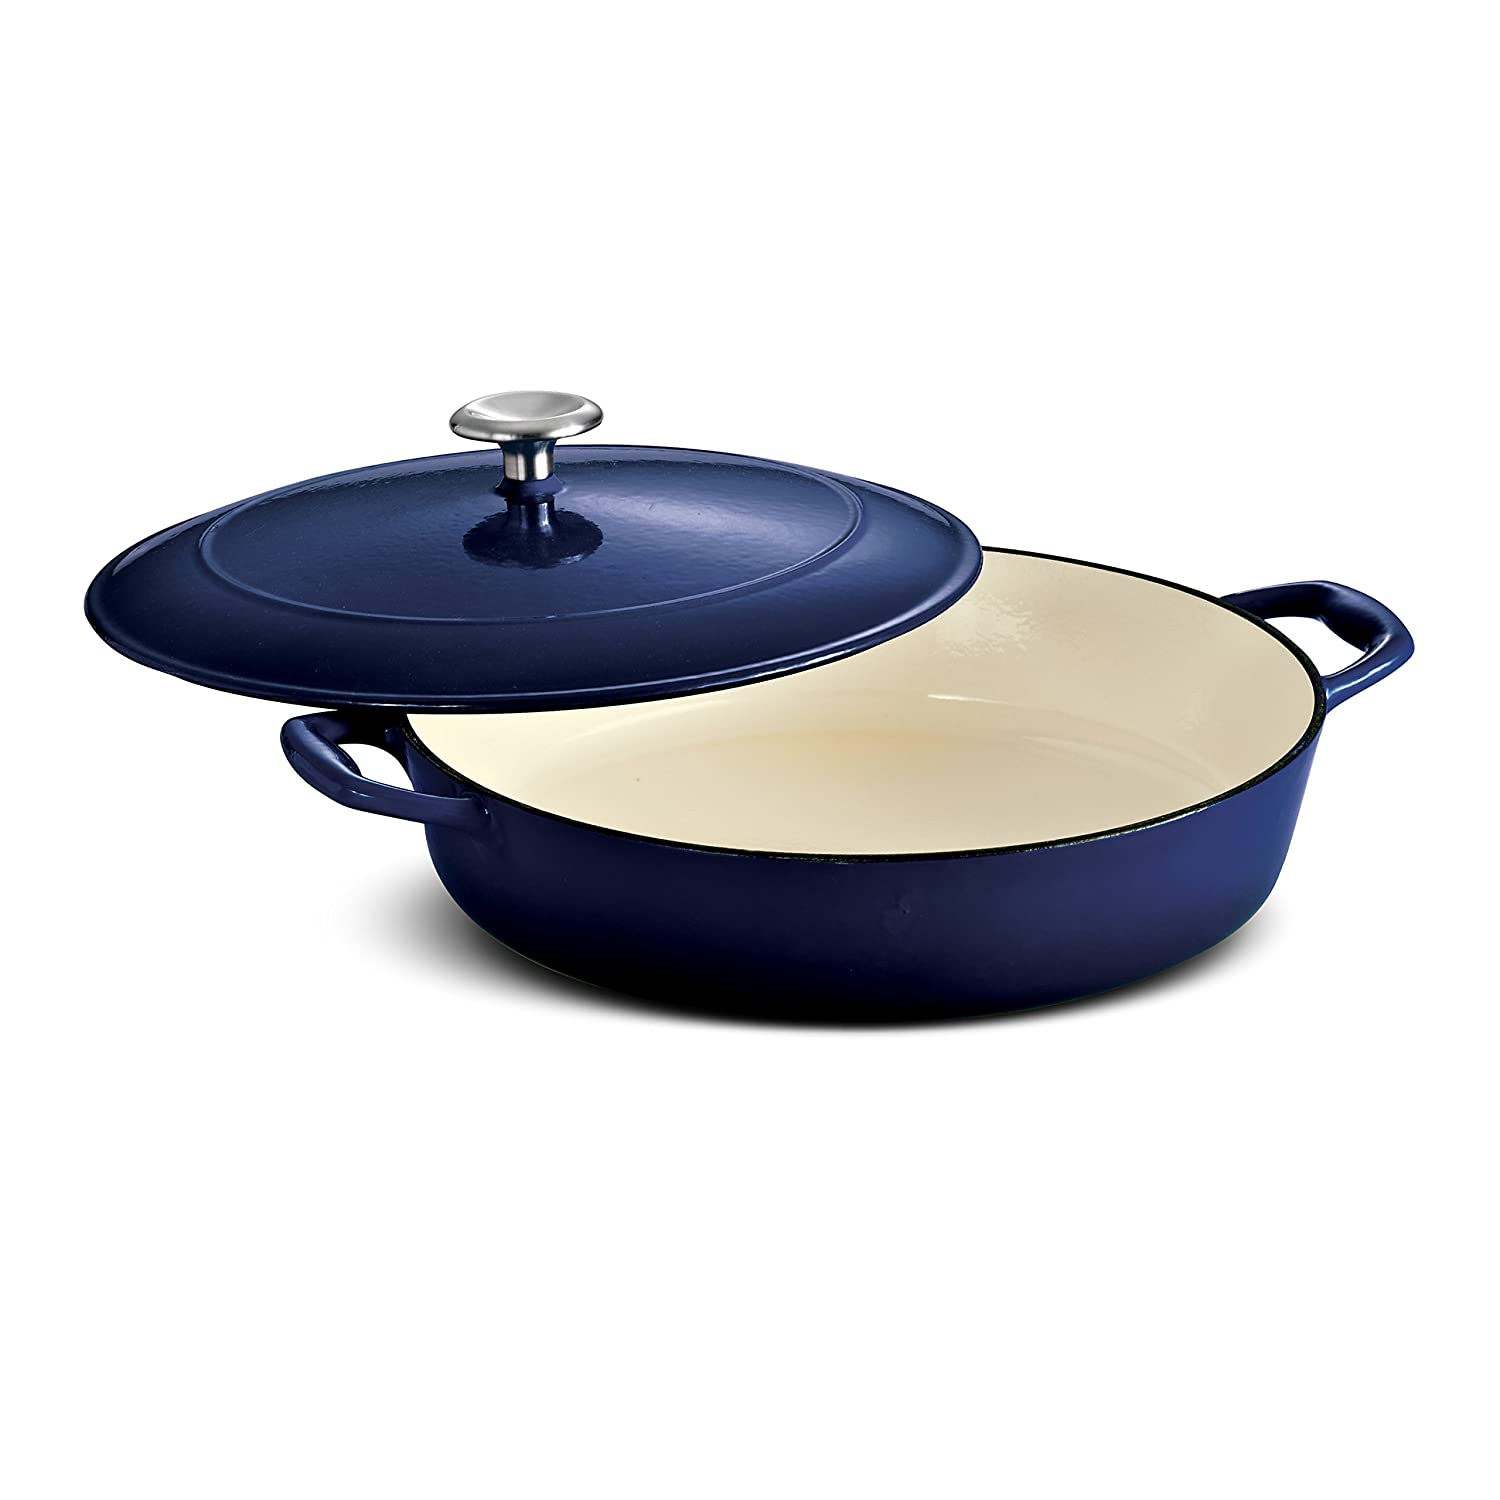 Tramontina 80131/069DS Enameled Cast Iron Covered Braiser, 4-Quart, Gradated Cobalt